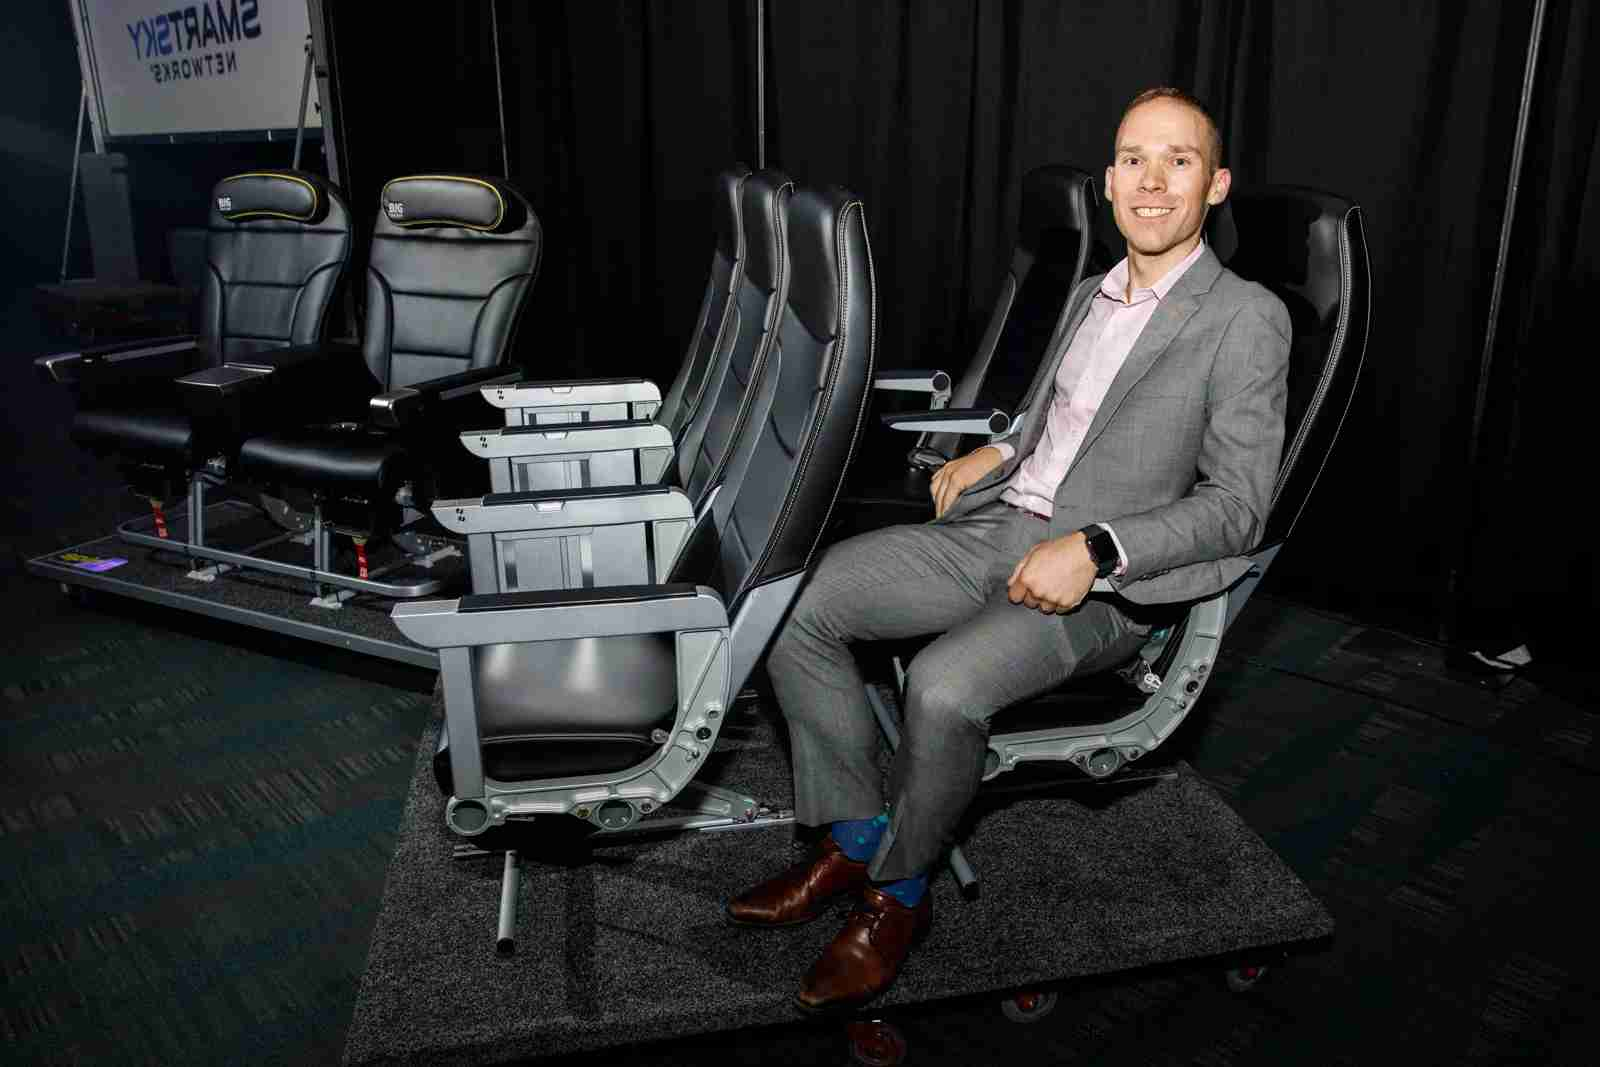 TPG reporter Edward Russell shows off the personal space for Spirit Airlines